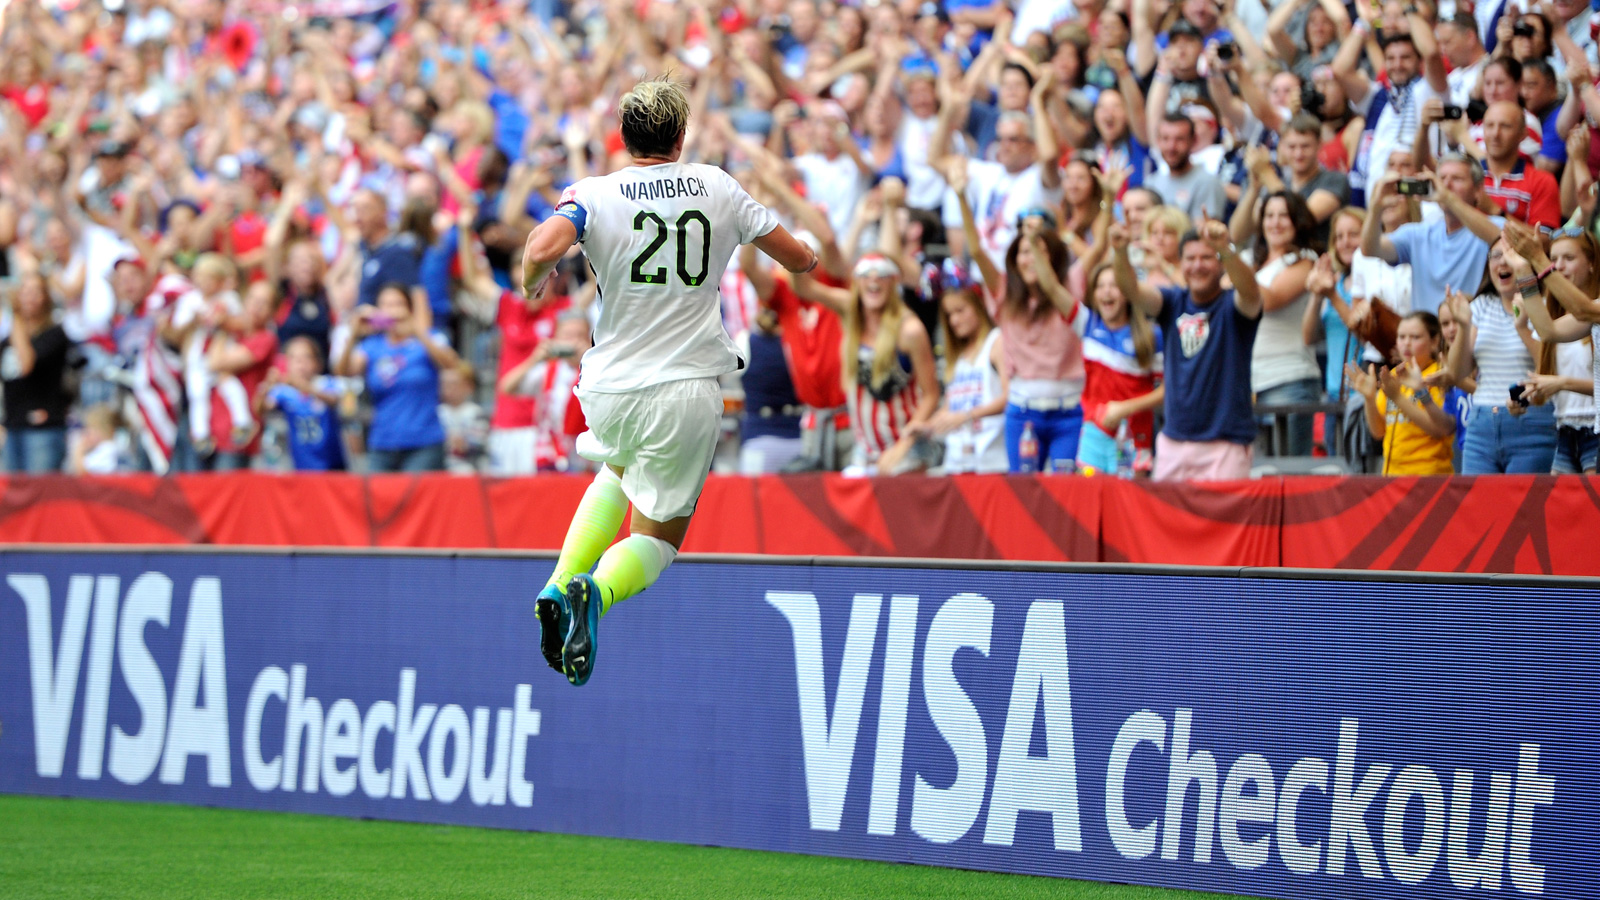 Abby Wambach leaps for joy after scoring in the 45th minute off Megan Rapinoe's corner kick, which delivered a 1-0 win to the USA and first place in Group D of the Women's World Cup.